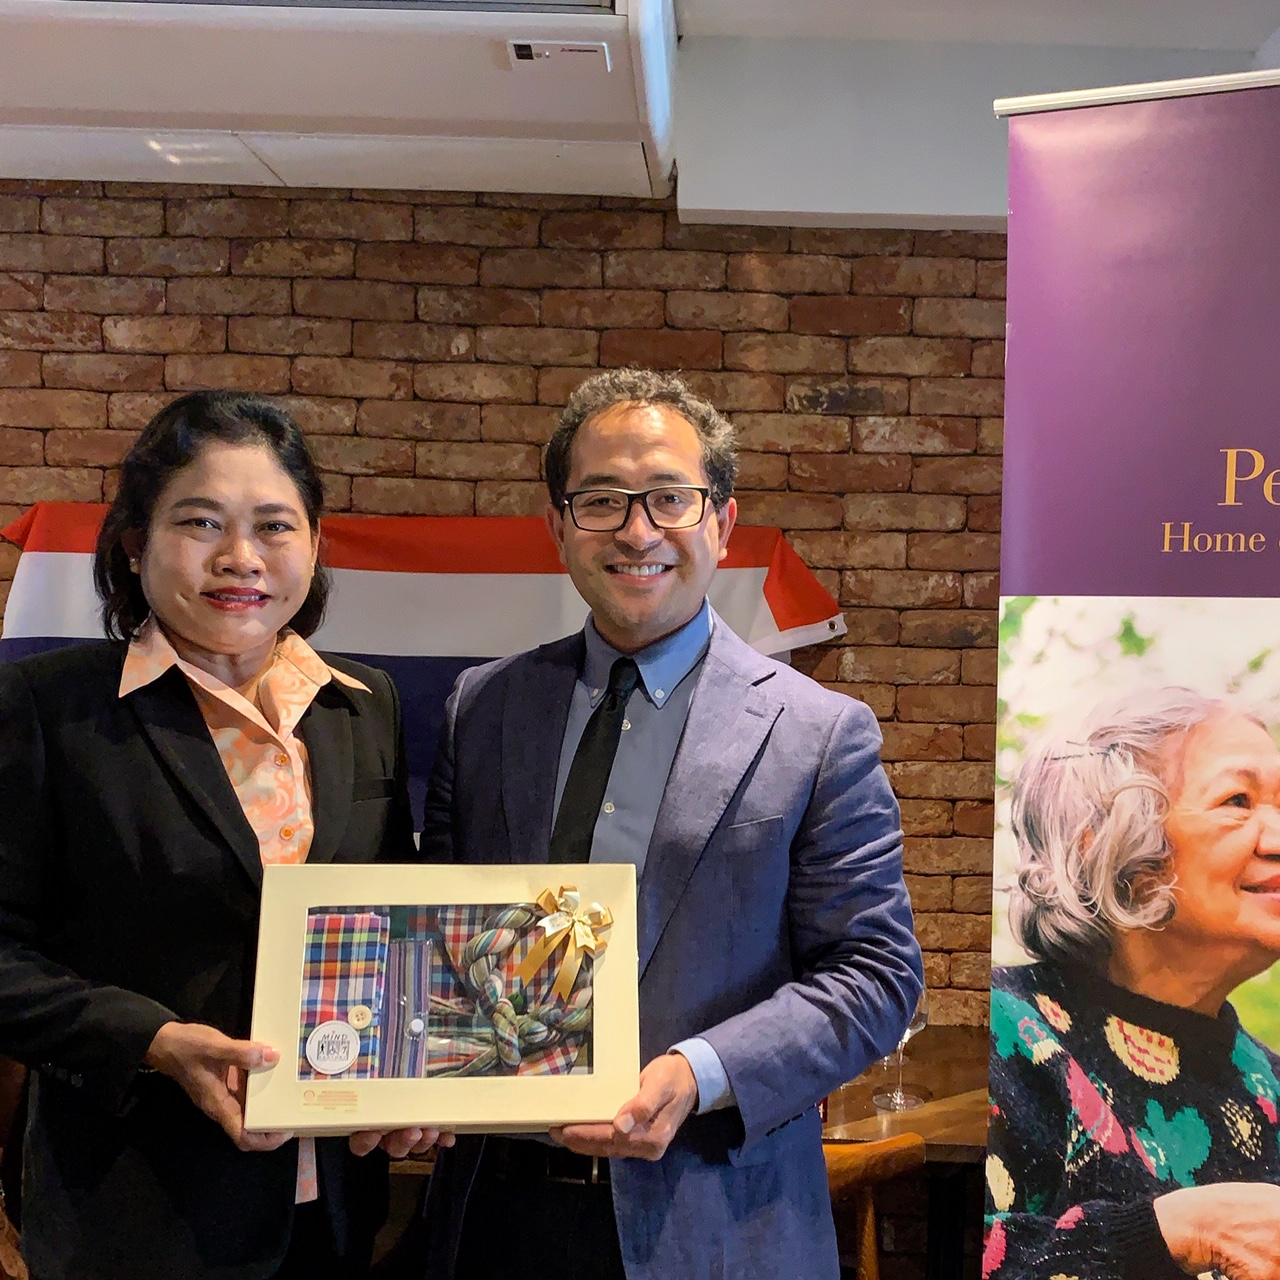 Exchange of gifts from Nata-orn Indeesri, head of the Thai delegation, to Penrose Care managing director Robert Stephenson-Padron